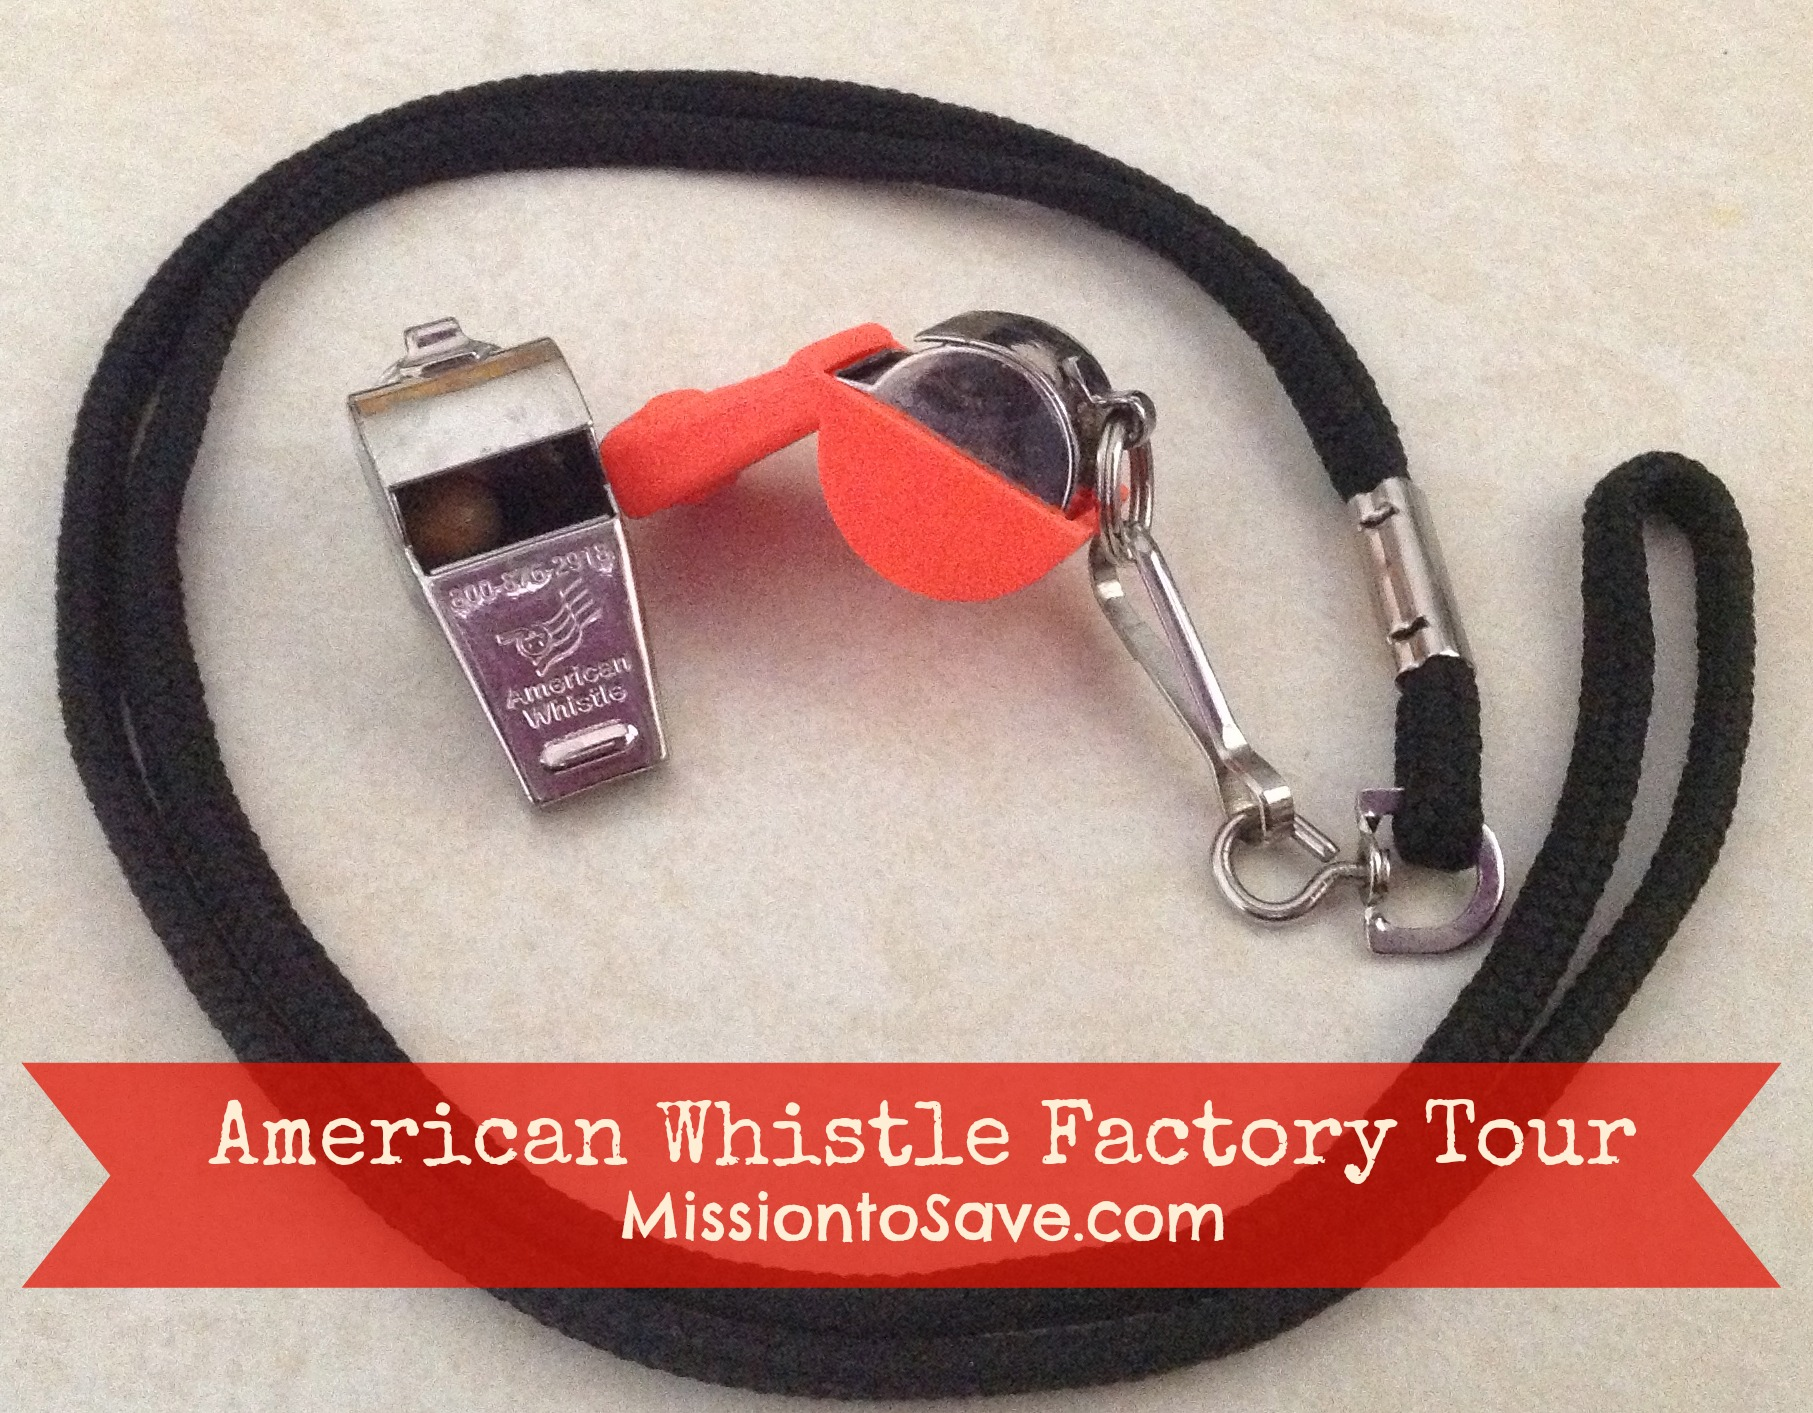 American Whistle Factory Tour on MissiontoSave.com